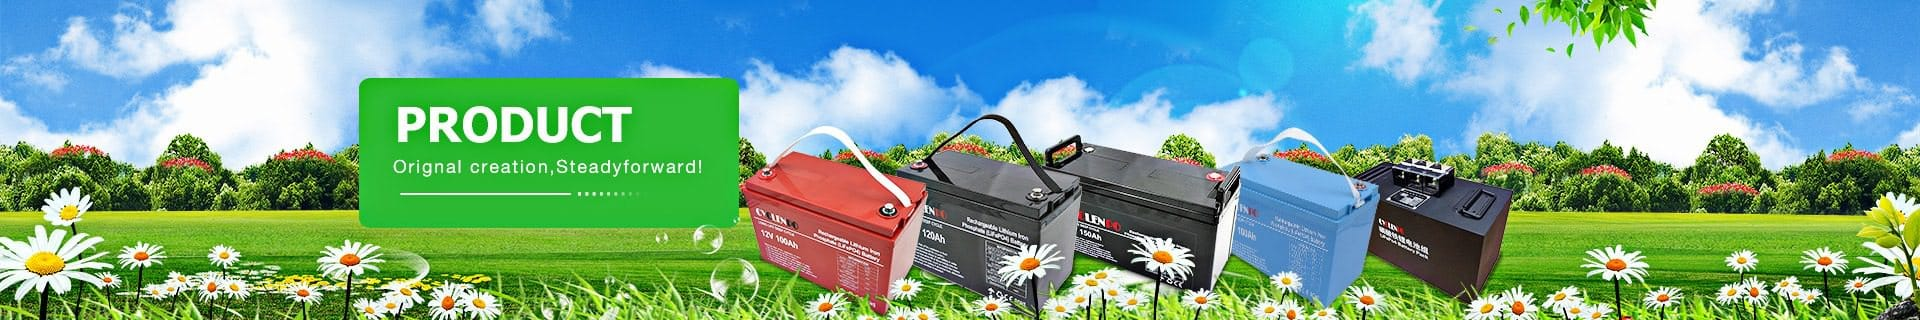 12v 30ah battery, 12v 30ah lithium battery, 12 volt 30ah battery, lifepo4 30ah